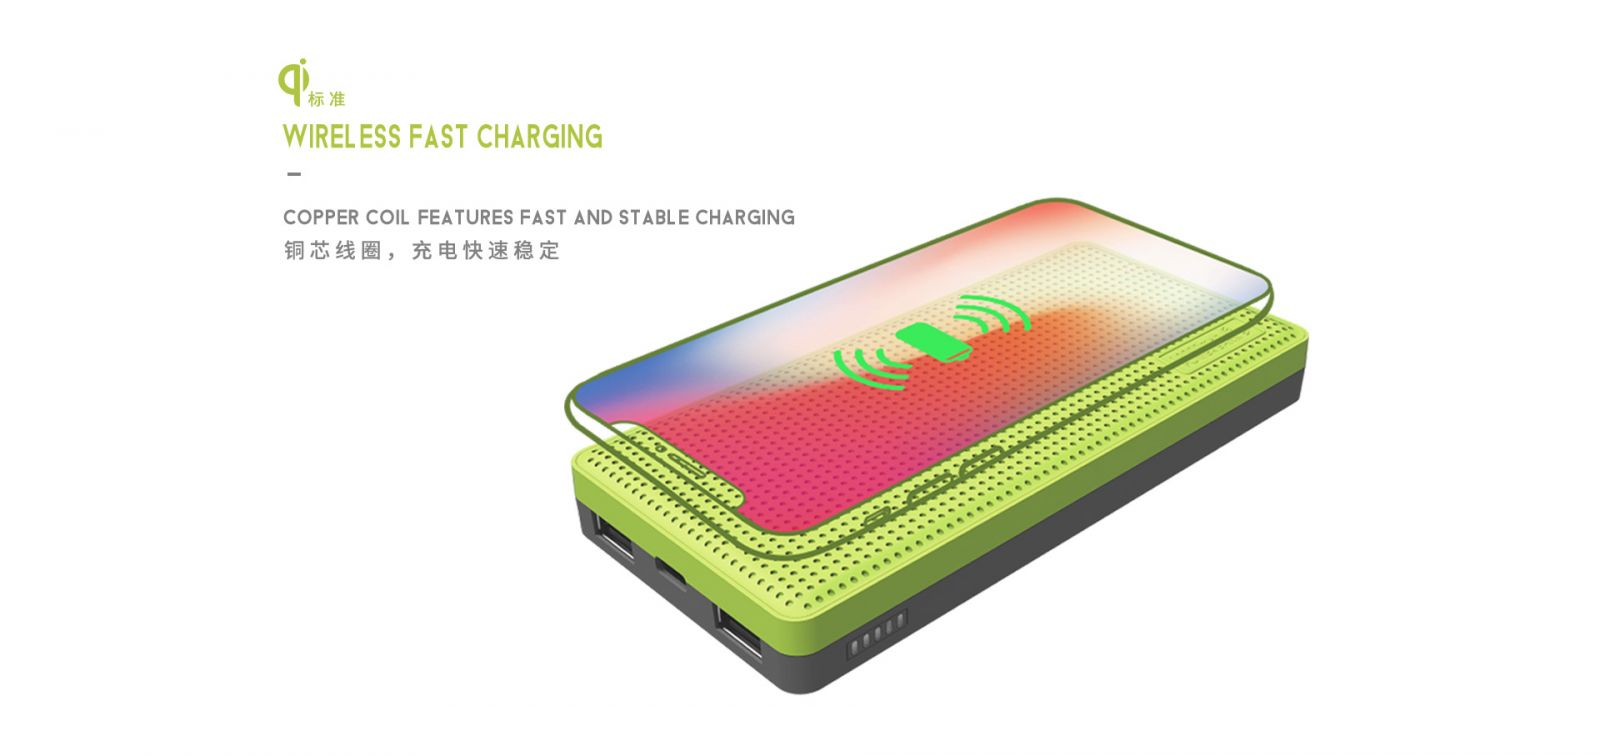 Cara Kerja Wireless Charger - The O Guide